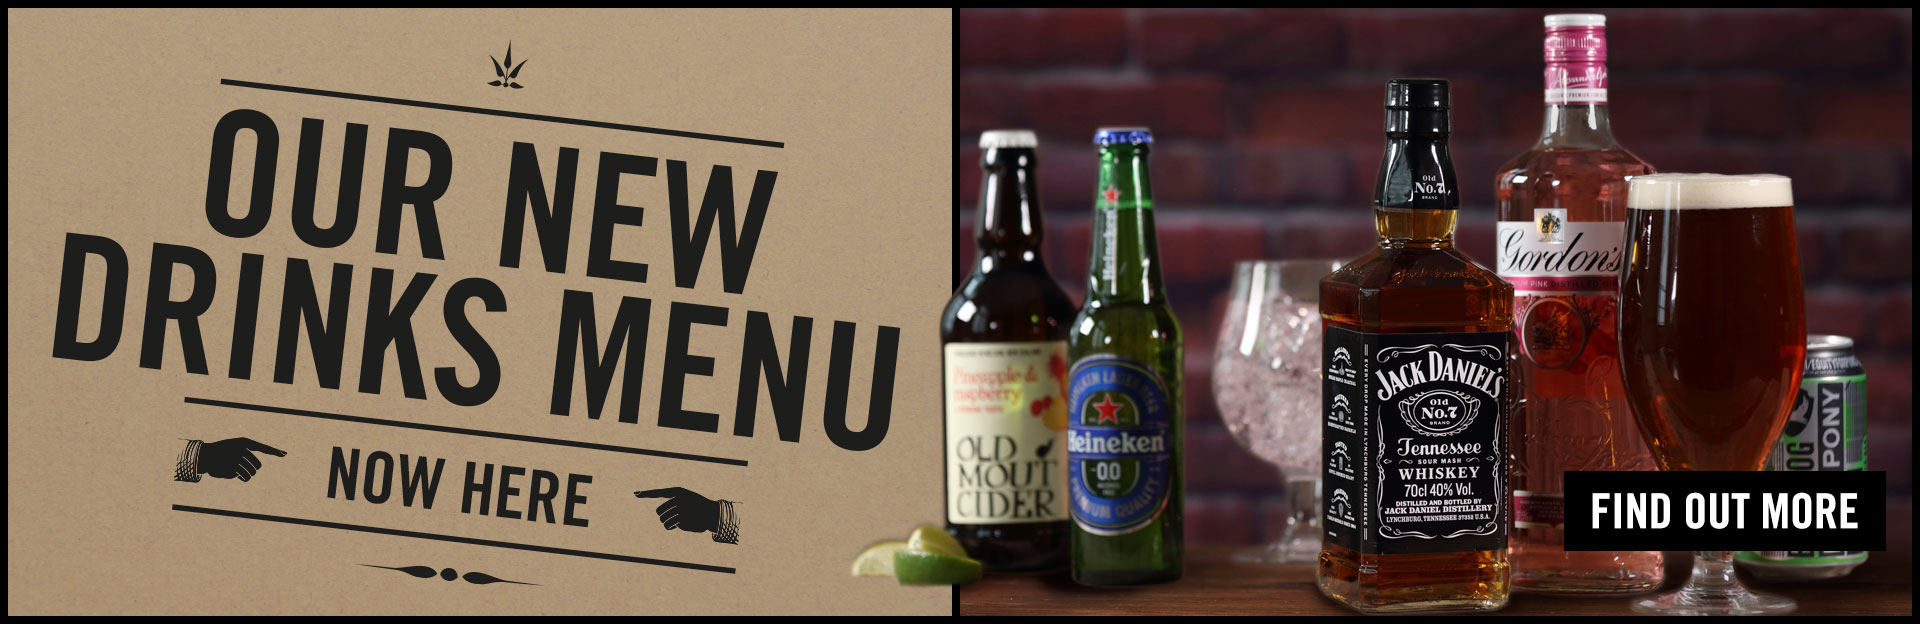 New Drinks Menu Coming Soon at The Green Dragon